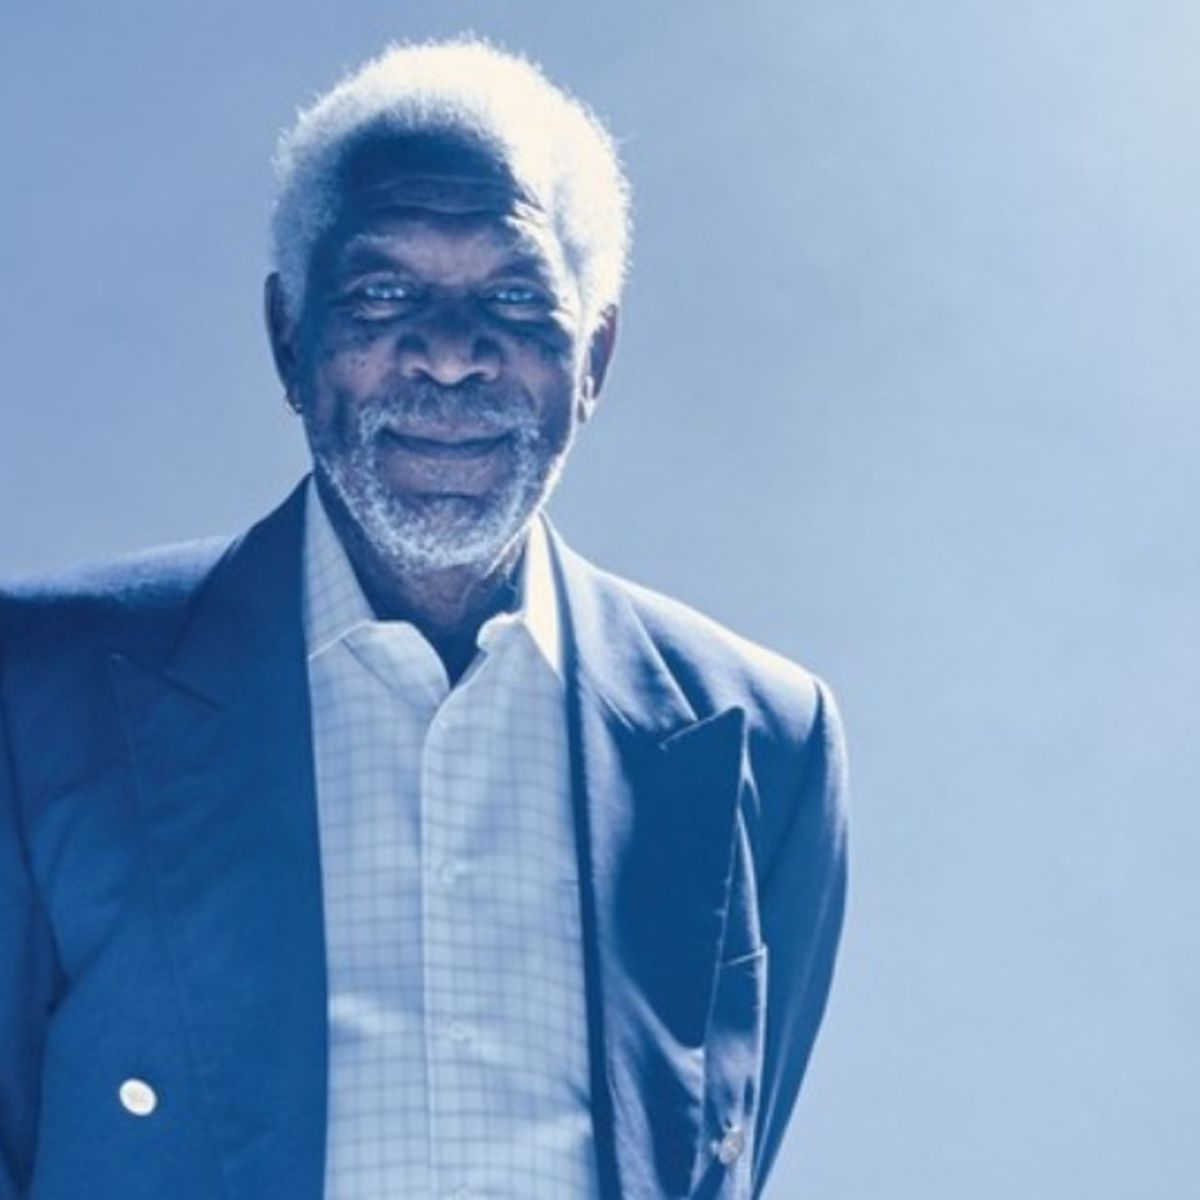 Exclusive: Morgan Freeman explores the soul of A.I. in Story of God ...